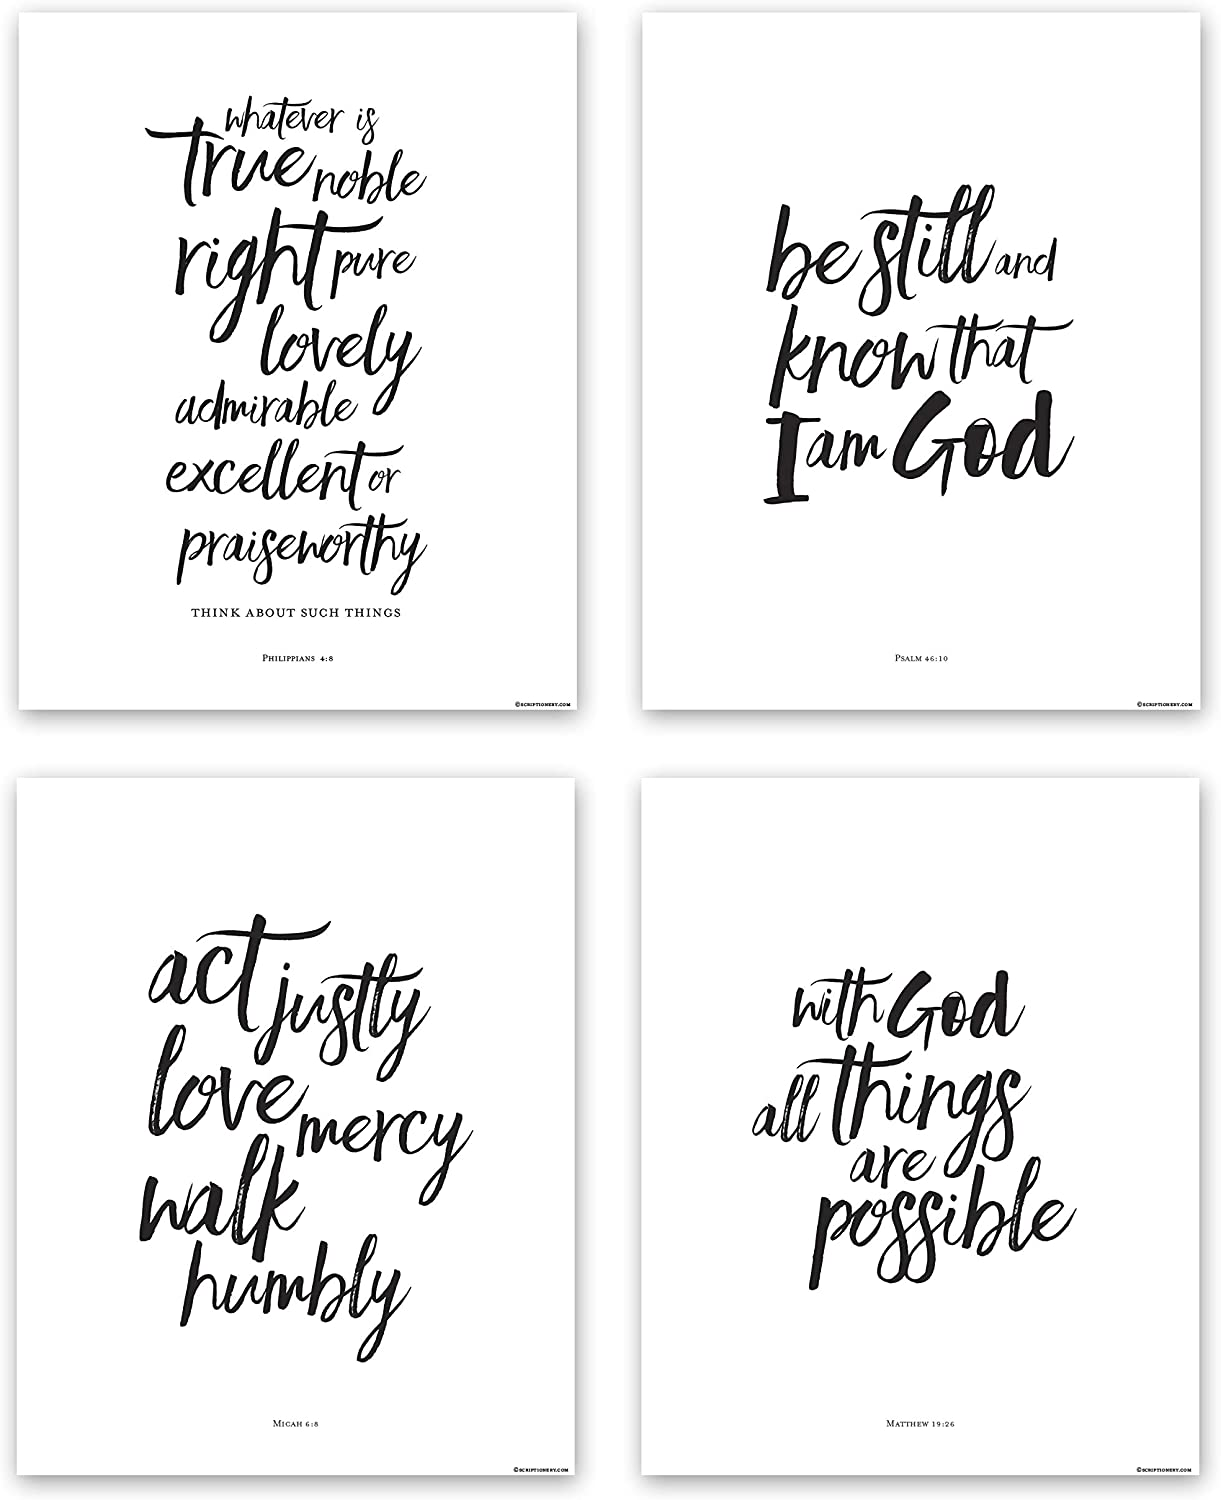 Inspirational Scripture Wall Art - Christian Wall Decor - 8x10 Bible Verse Wall Decor (4 Piece Wall Art Set: Matthew 19 26, Philippians 4 8, Micah 6 8, and Psalm 46 10) (Black & White)